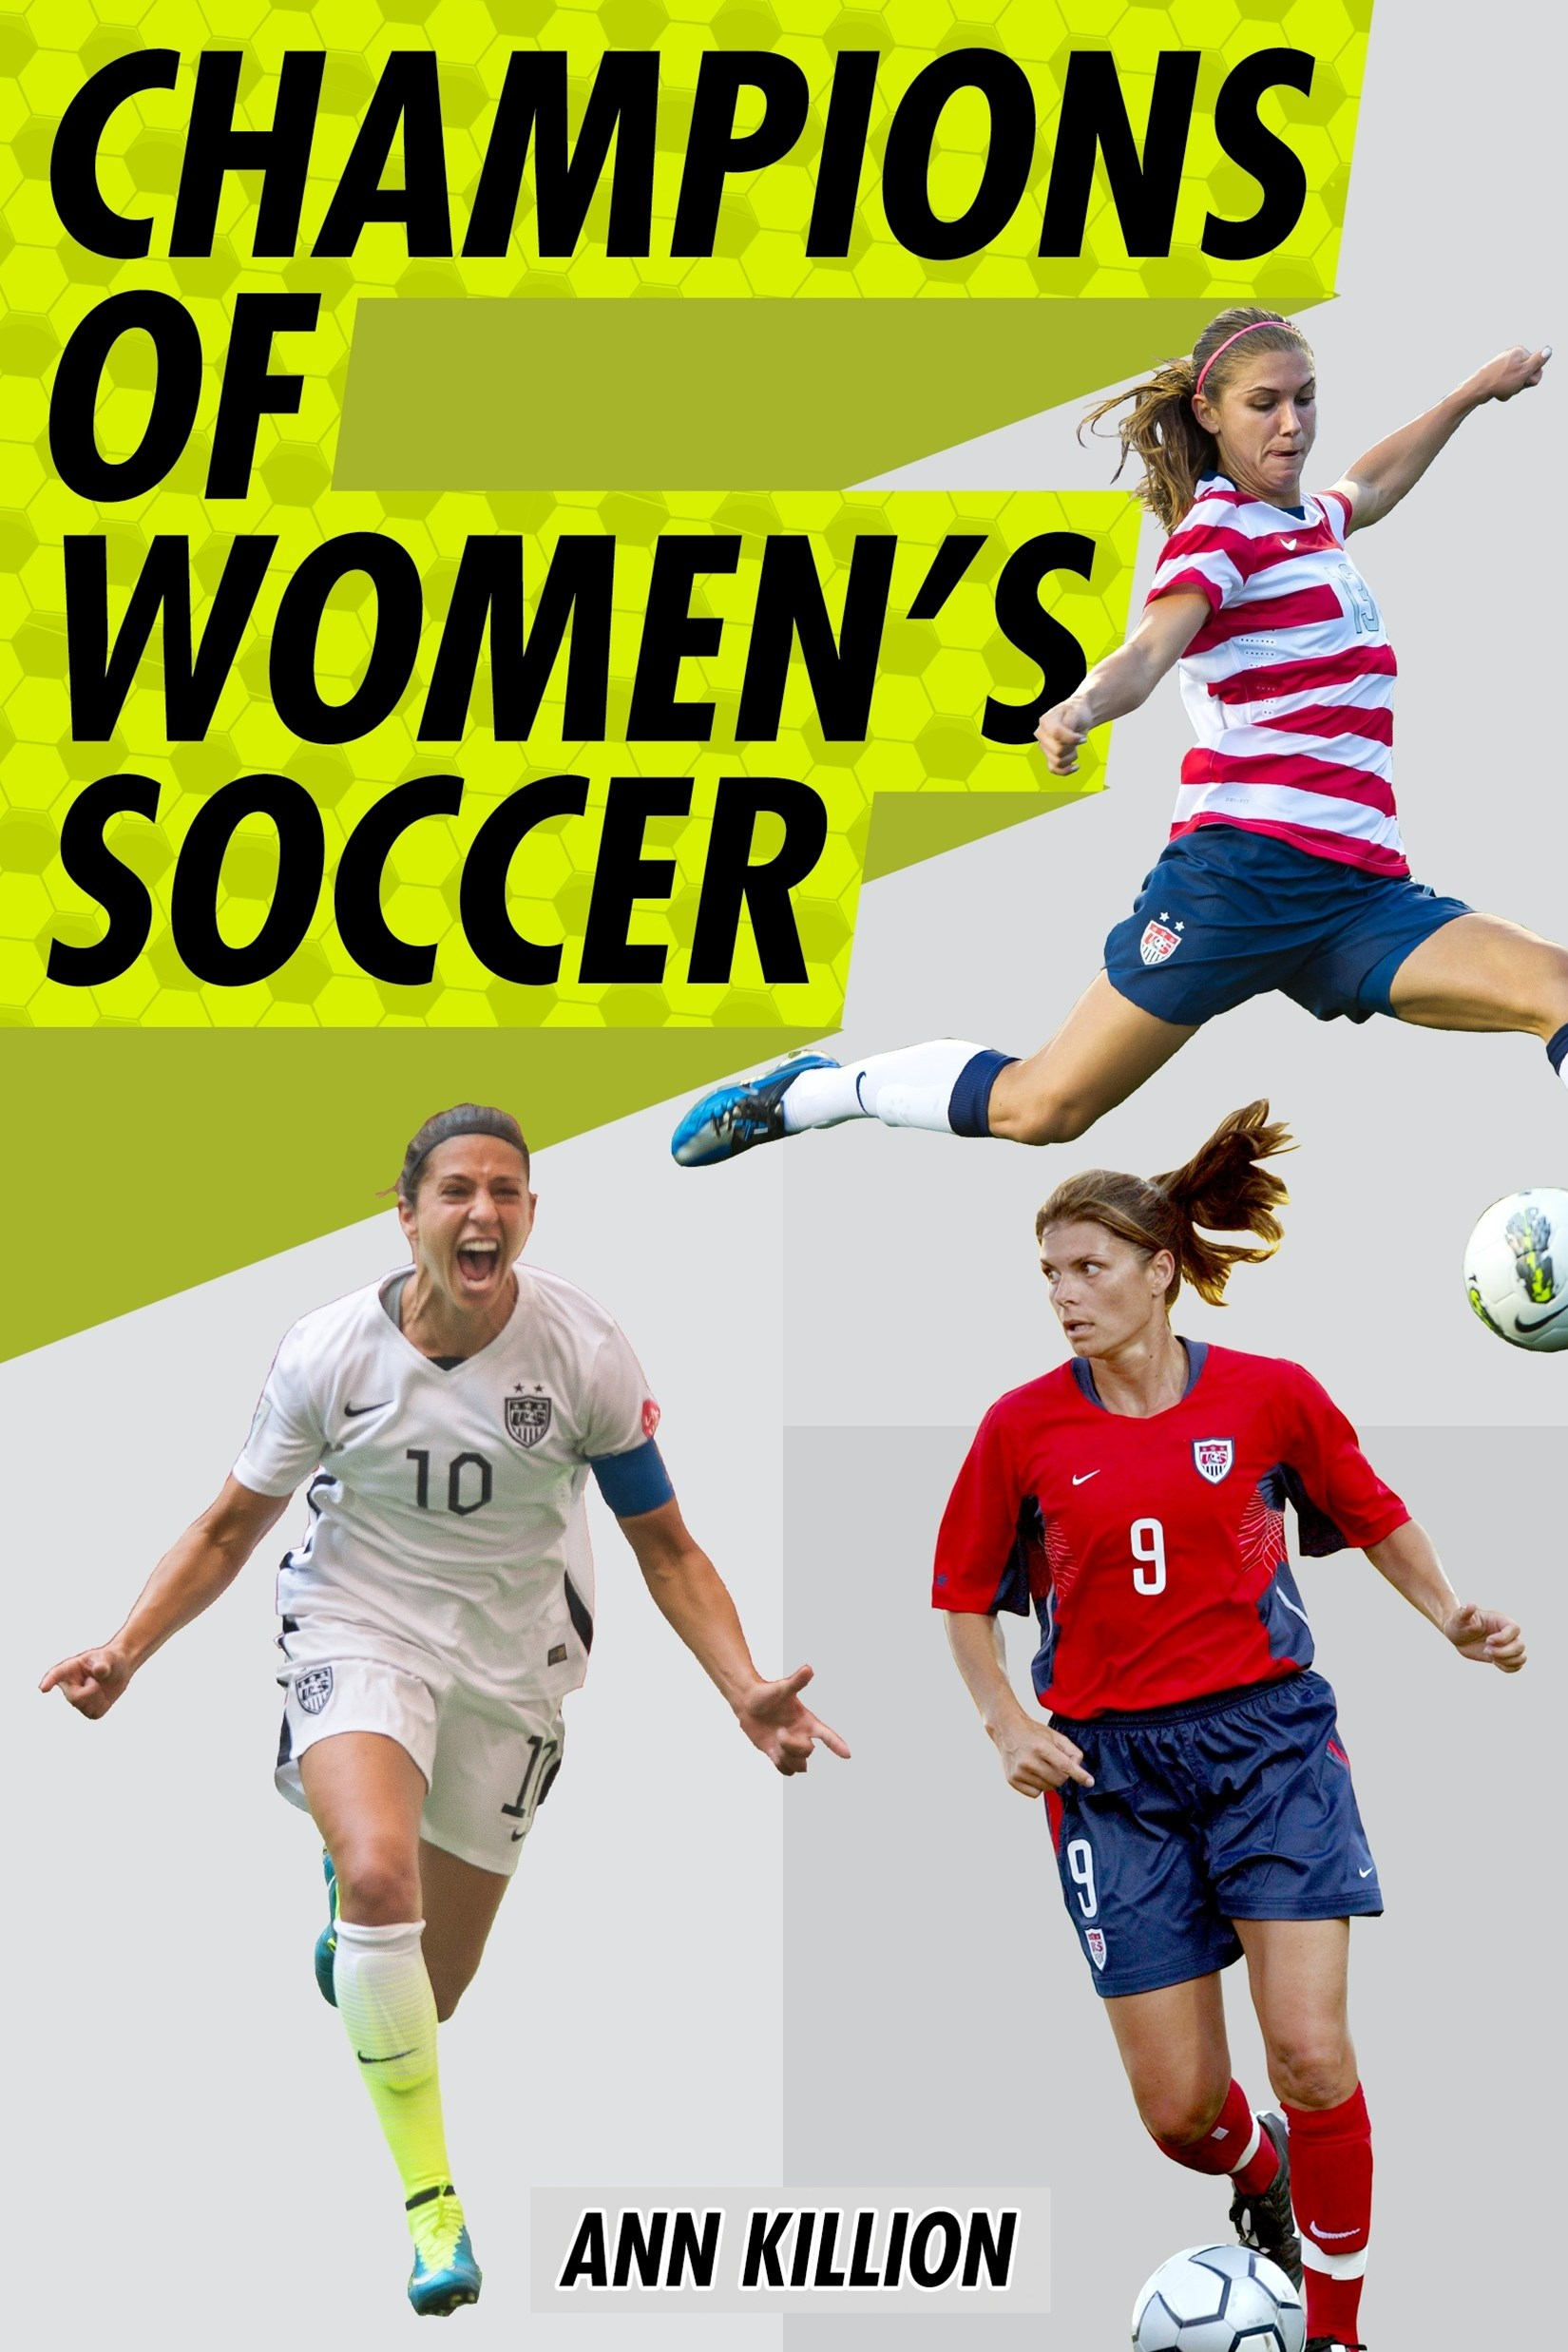 Champions Of Women's Soccer